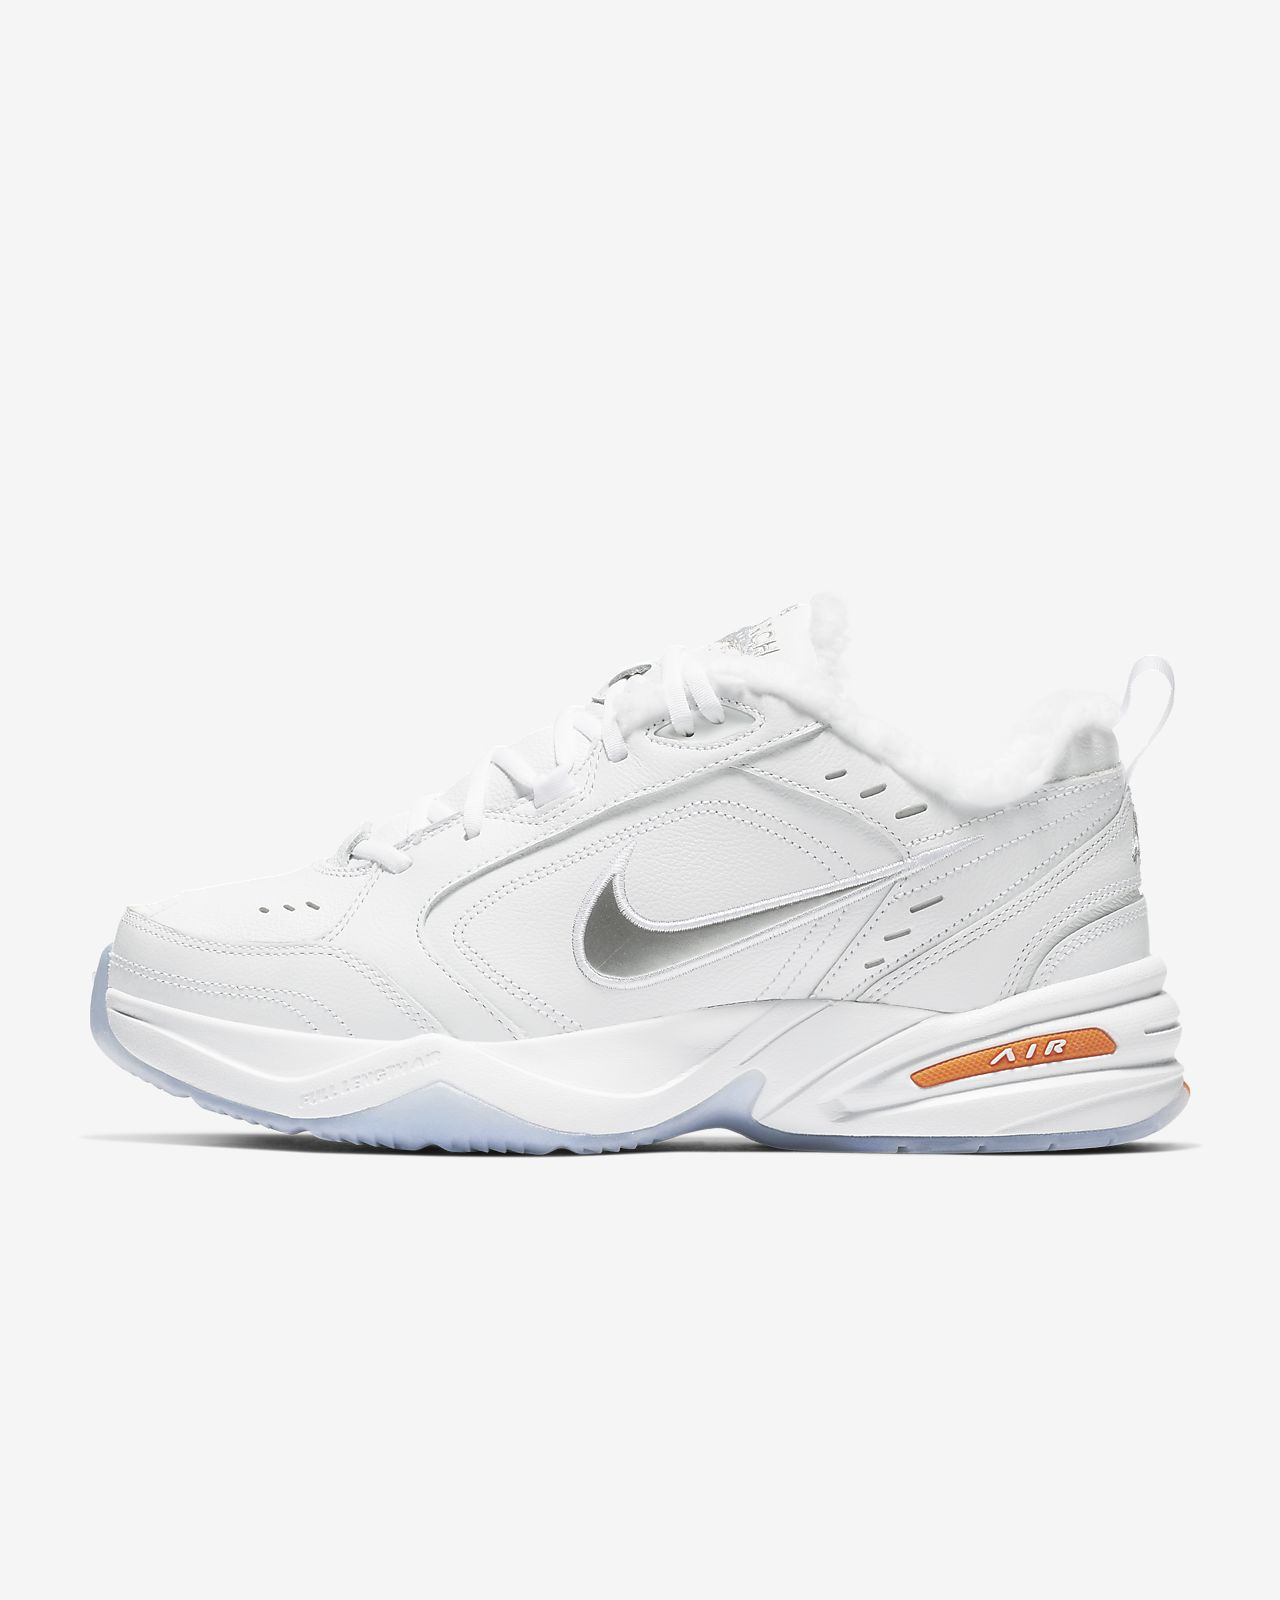 b2626cd141d6 Nike Air Monarch IV PR Men s Shoe. Nike.com